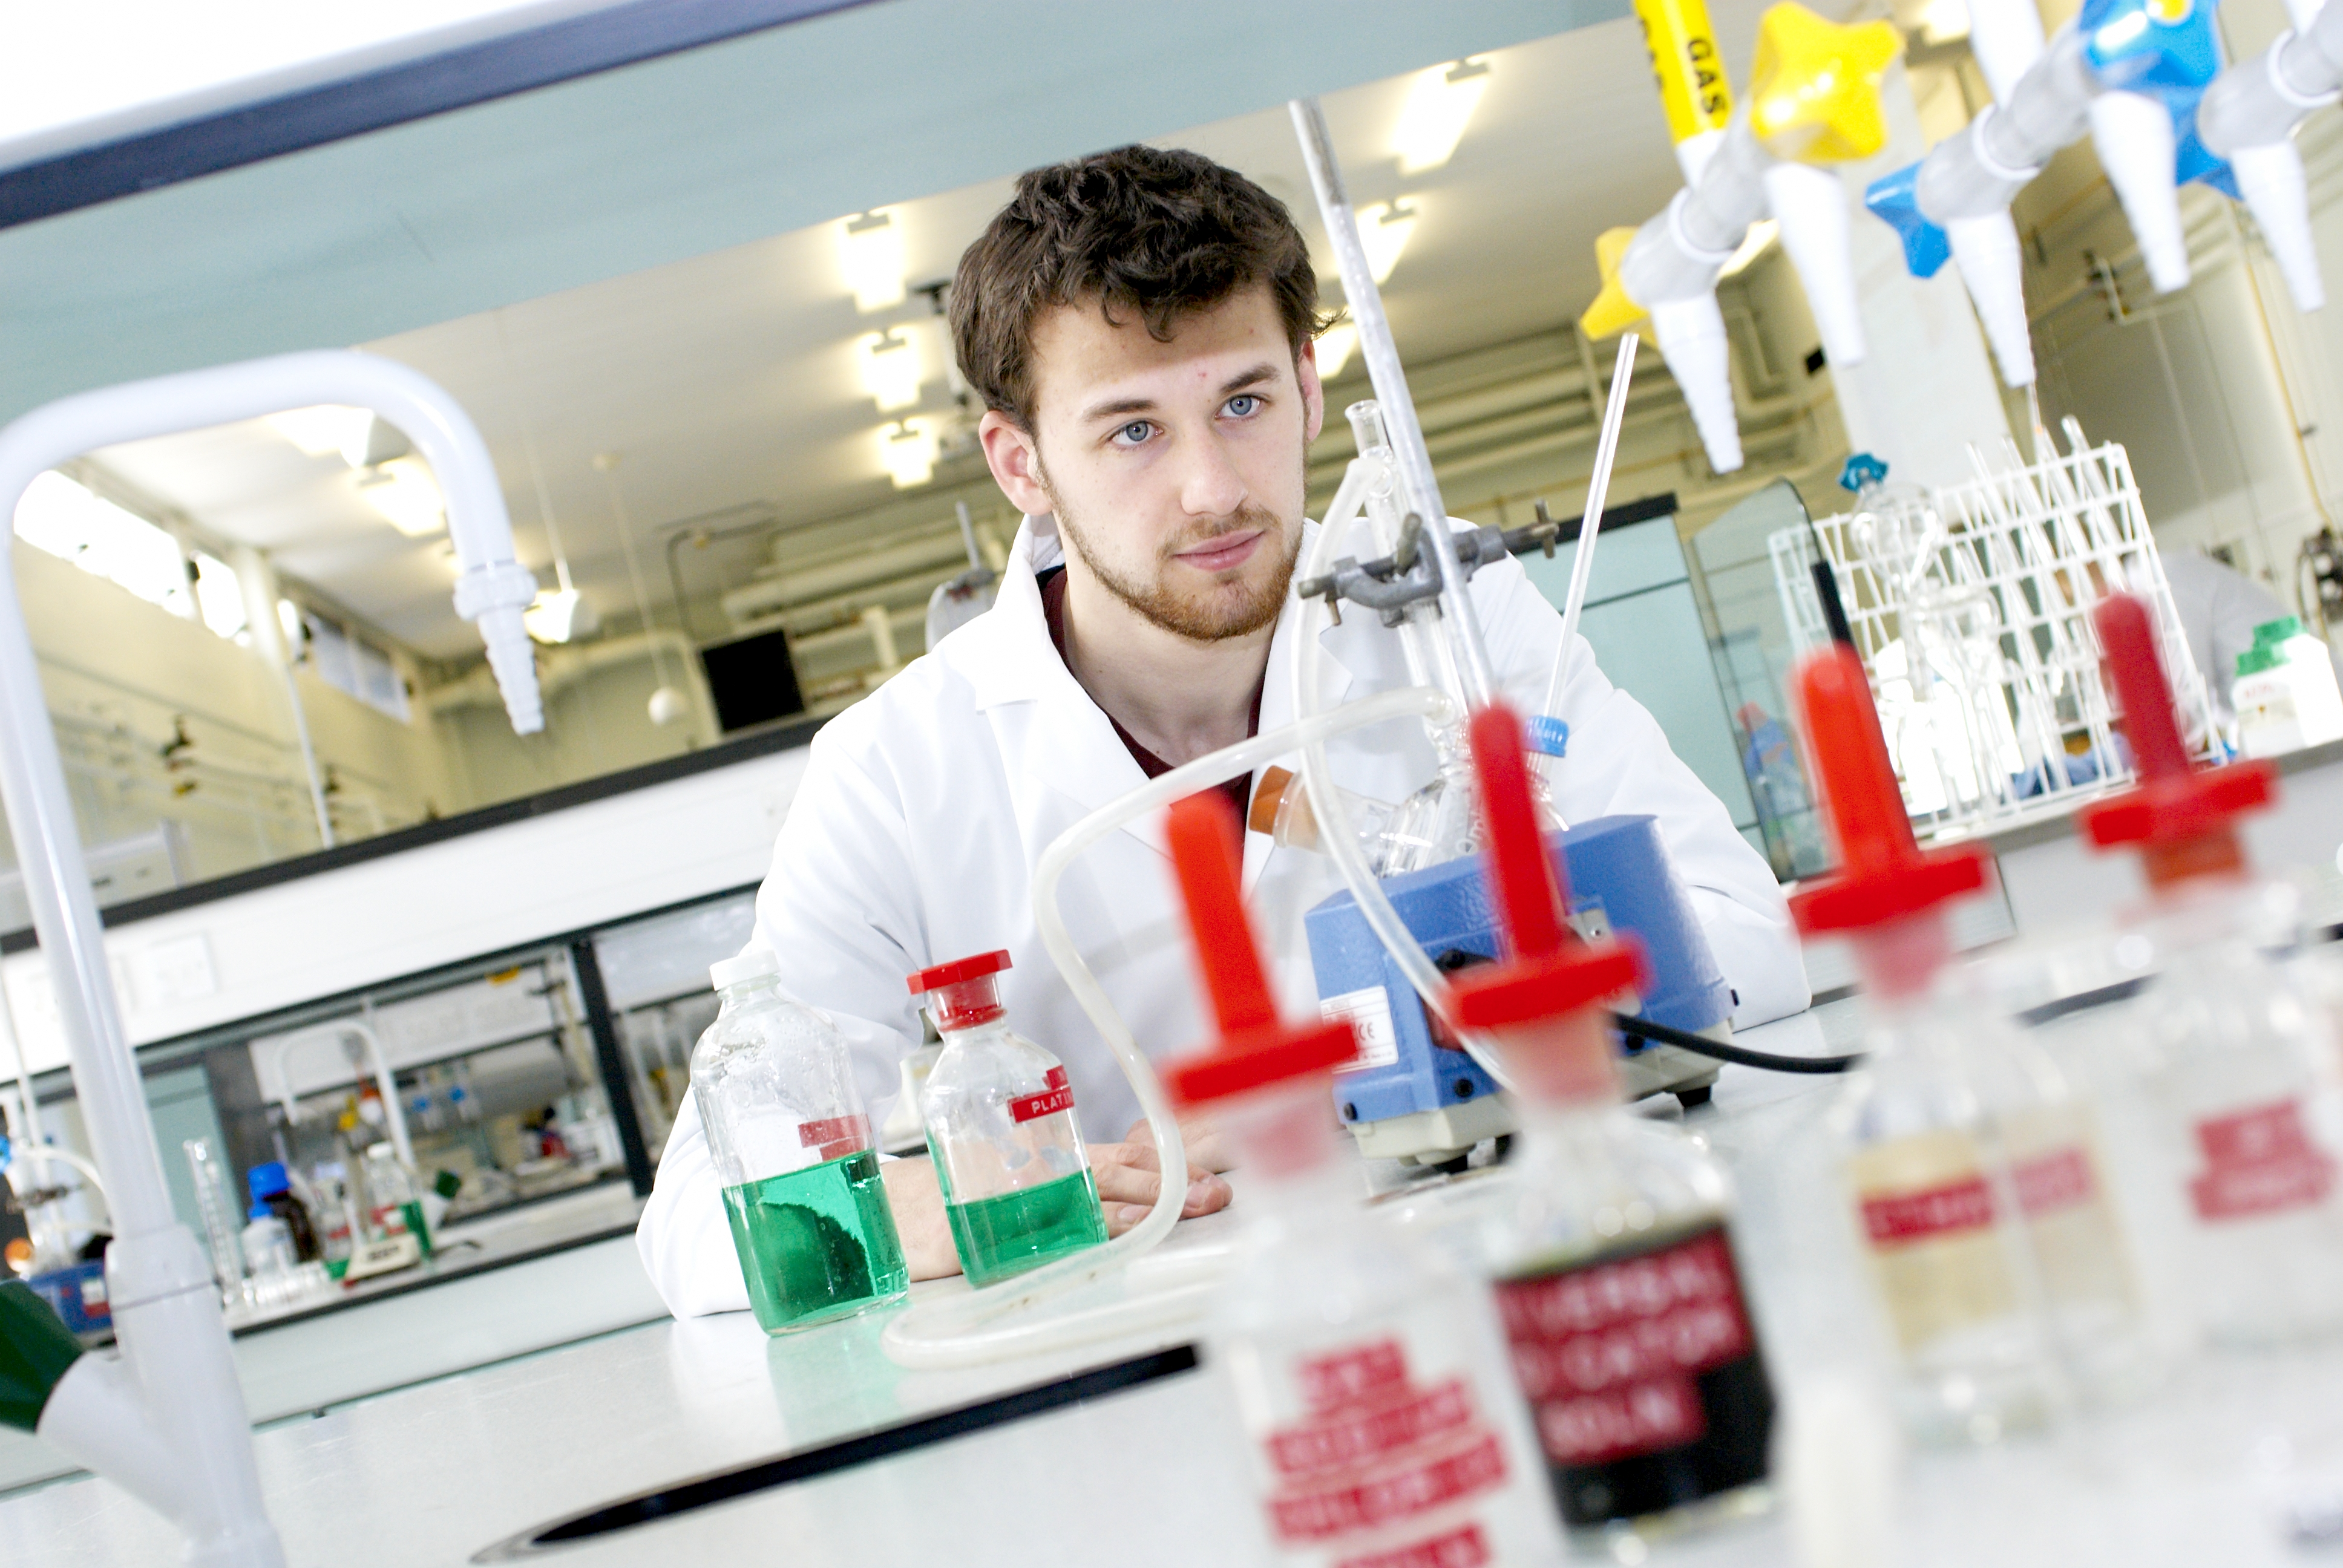 Student working in pharmacy laboratory with science equipment